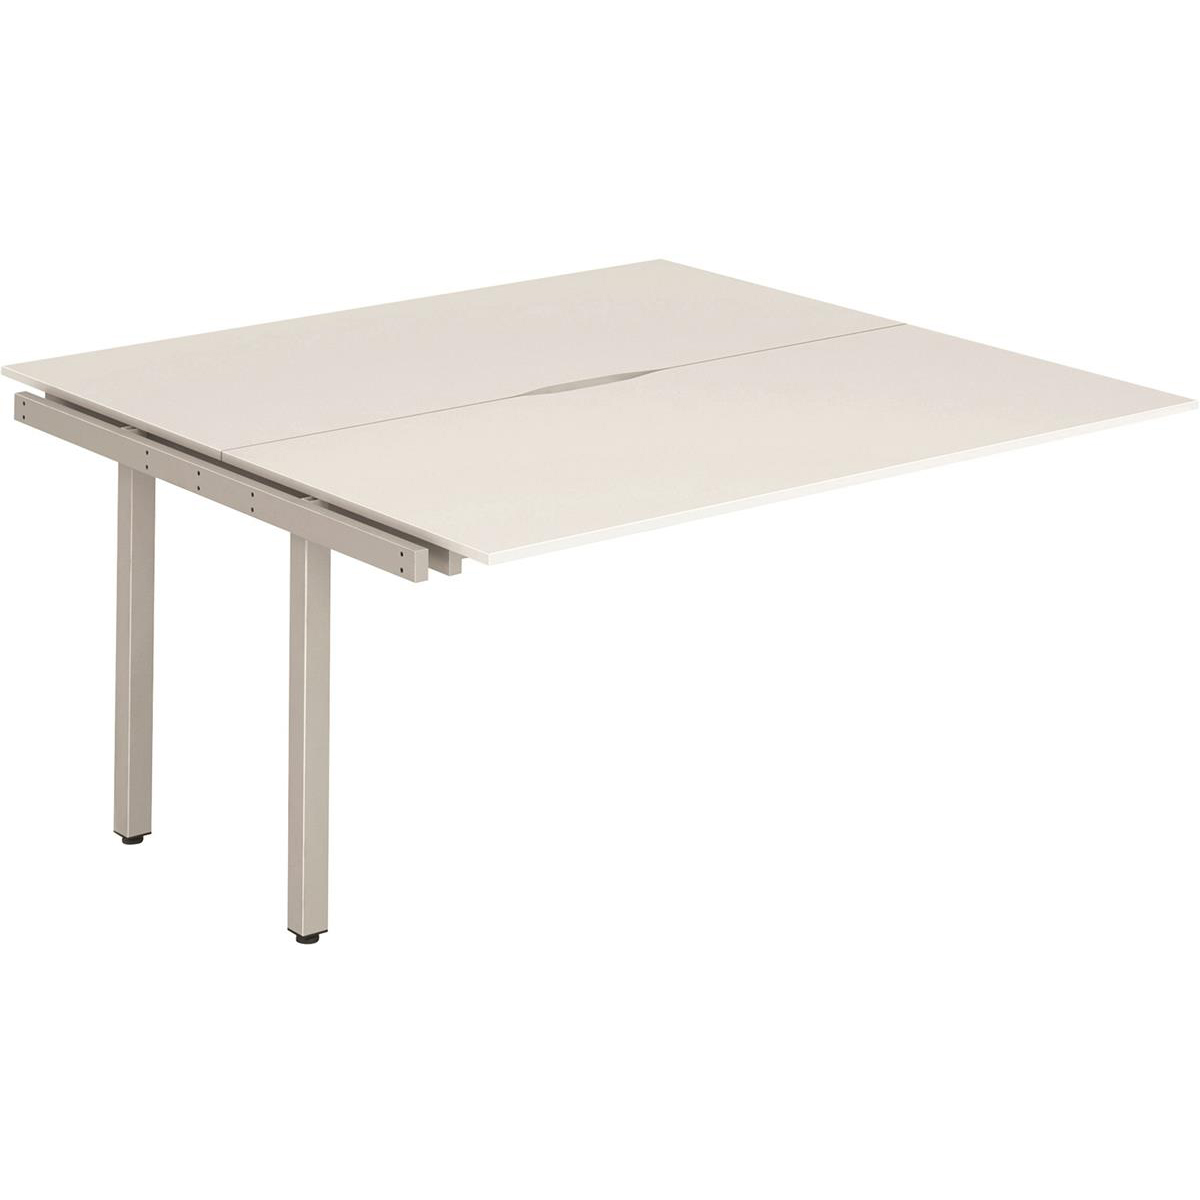 Trexus Bench Desk Double Extension Back to Back Configuration Silver Leg 1400x1600mm White Ref BE215